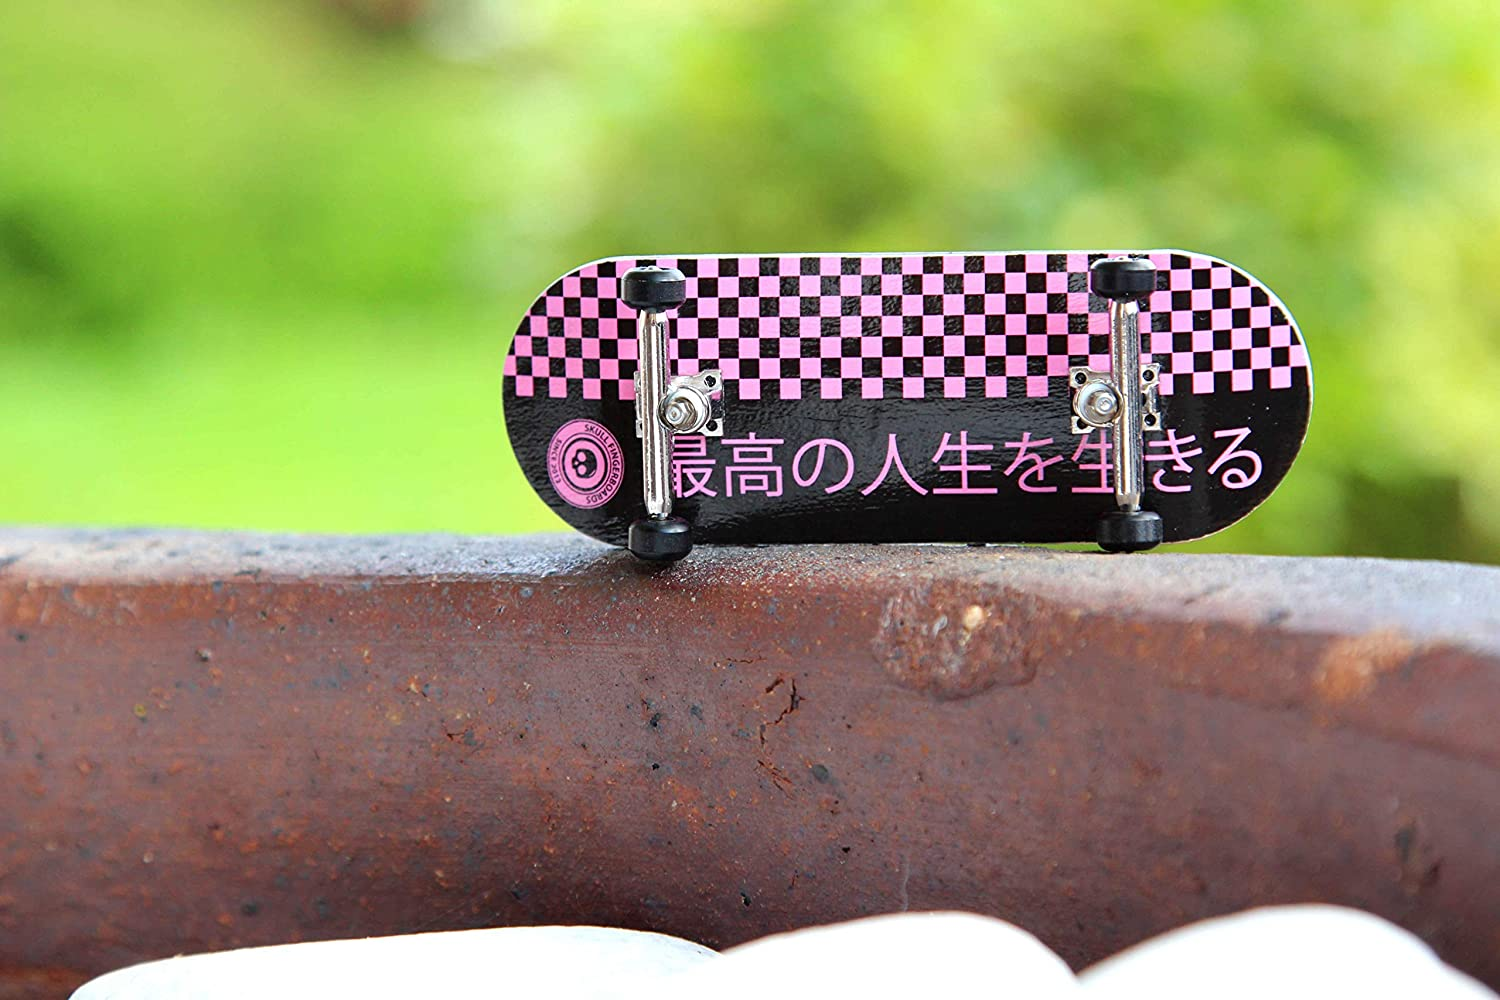 Skull Fingerboards Japan Pink Edition 34mm Pro Complete Professional Wooden Fingerboard Mini Skateboard 5 PLY with CNC Bearing Wheels